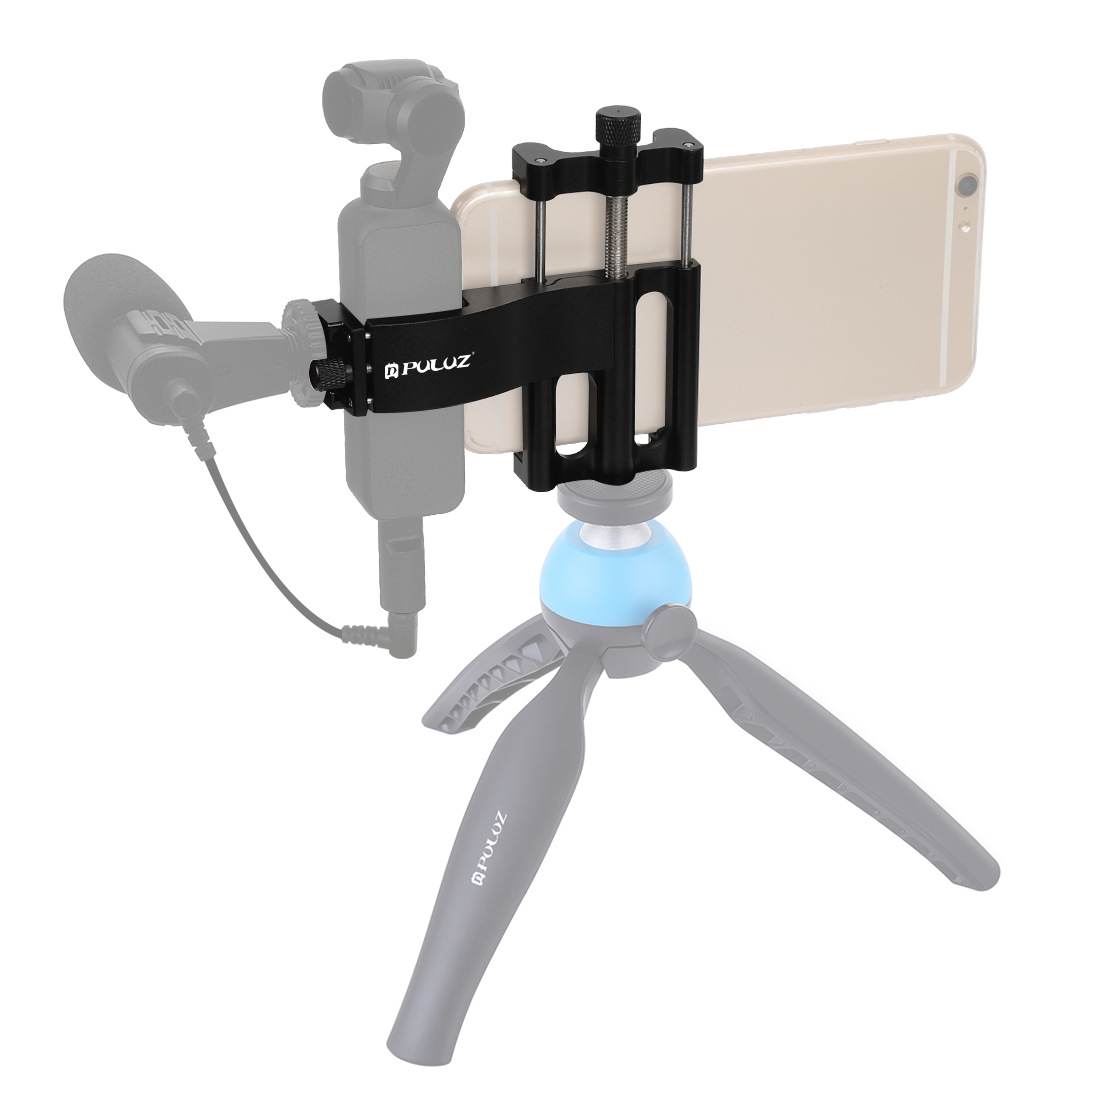 For Dji Osmo Pocket Camera Mobile Phone Holder Mount Set Fixed Stand Aluminum alloy Bracket  black